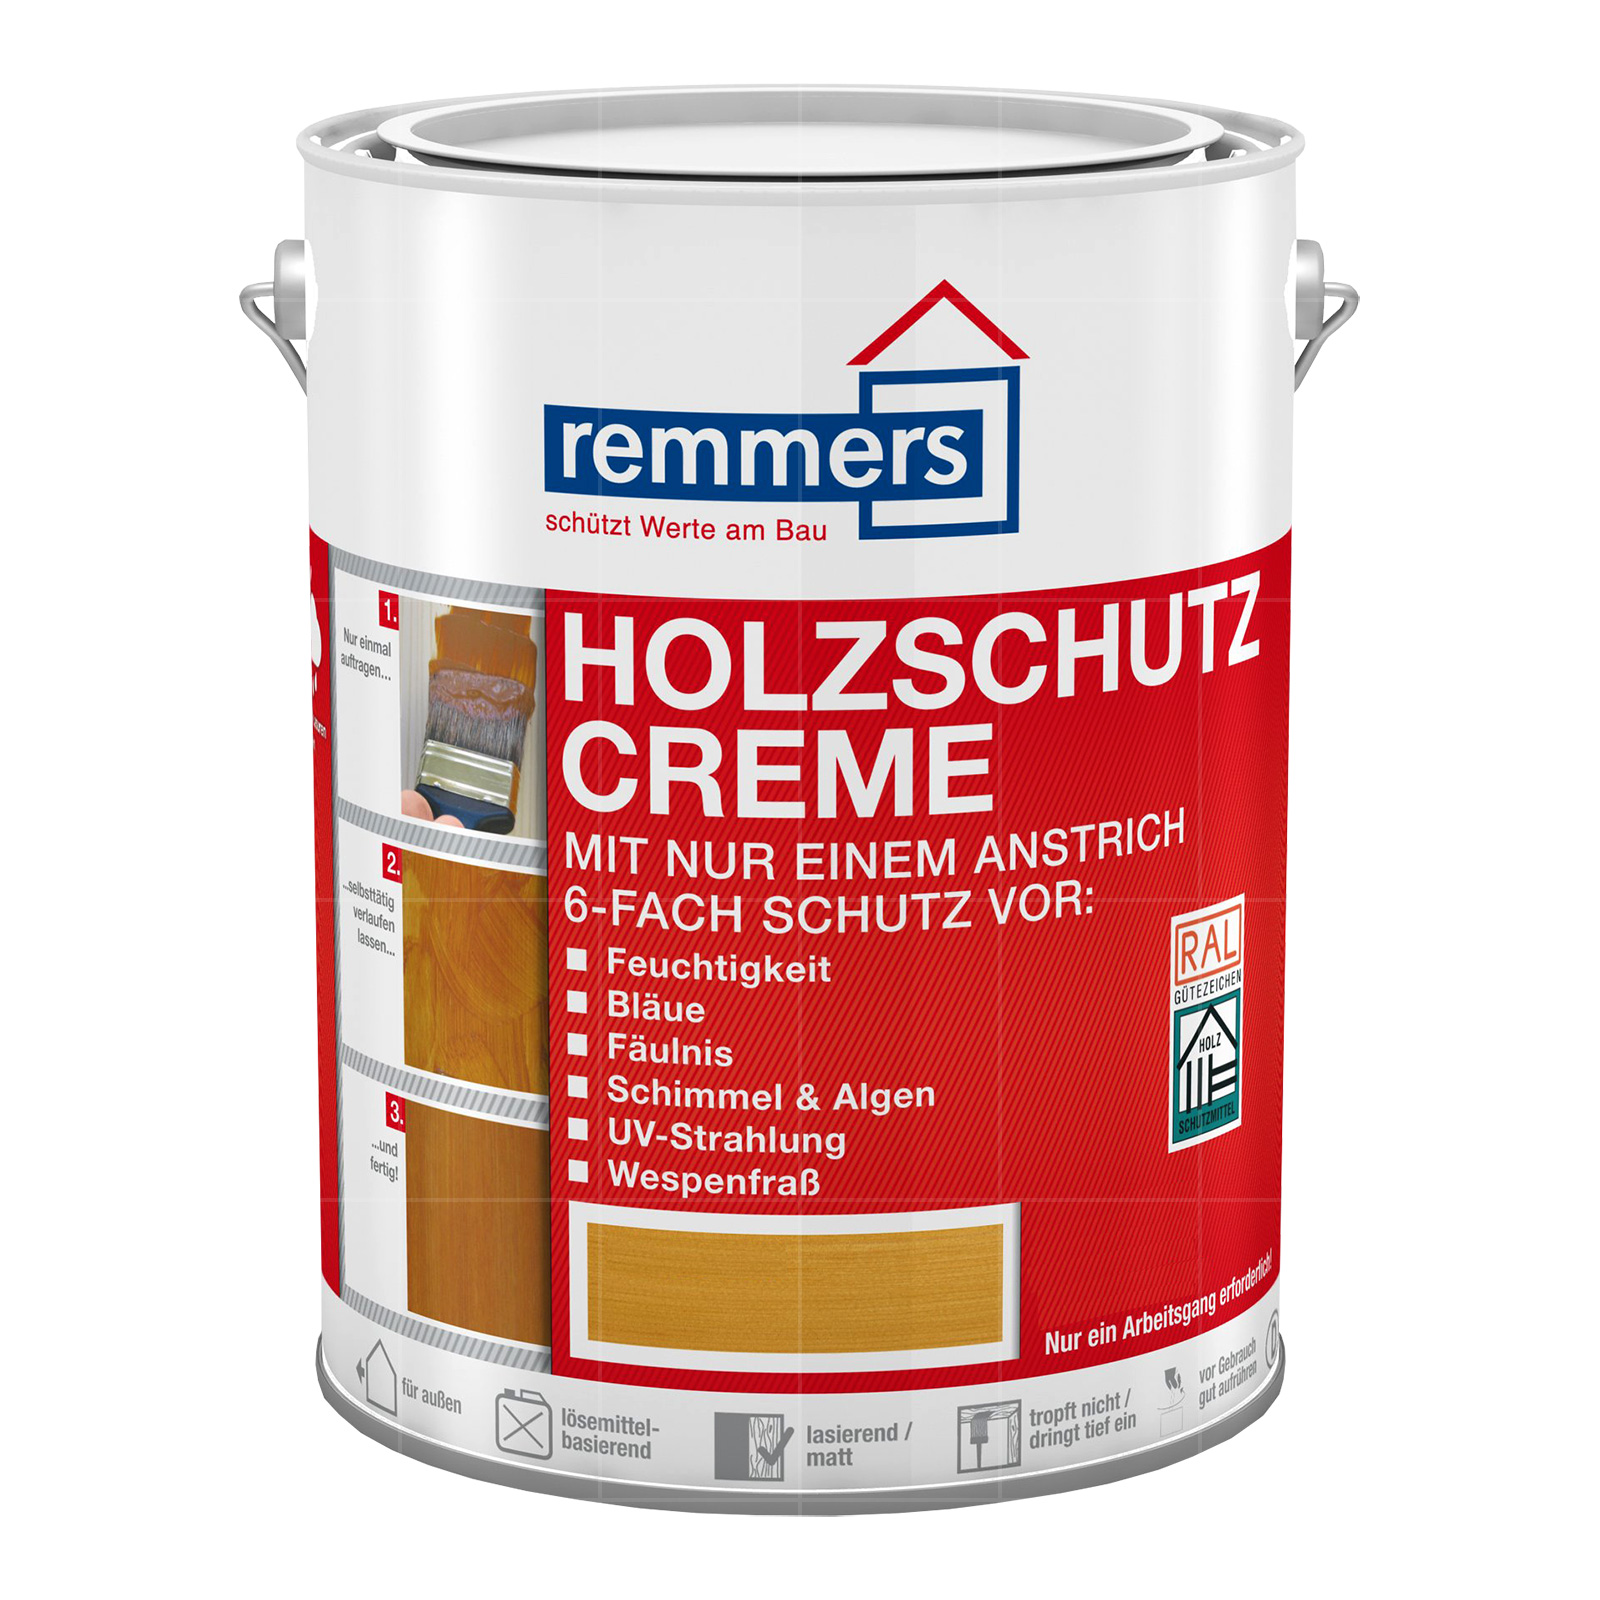 remmers holzschutz creme 750ml eiche hell 10811. Black Bedroom Furniture Sets. Home Design Ideas